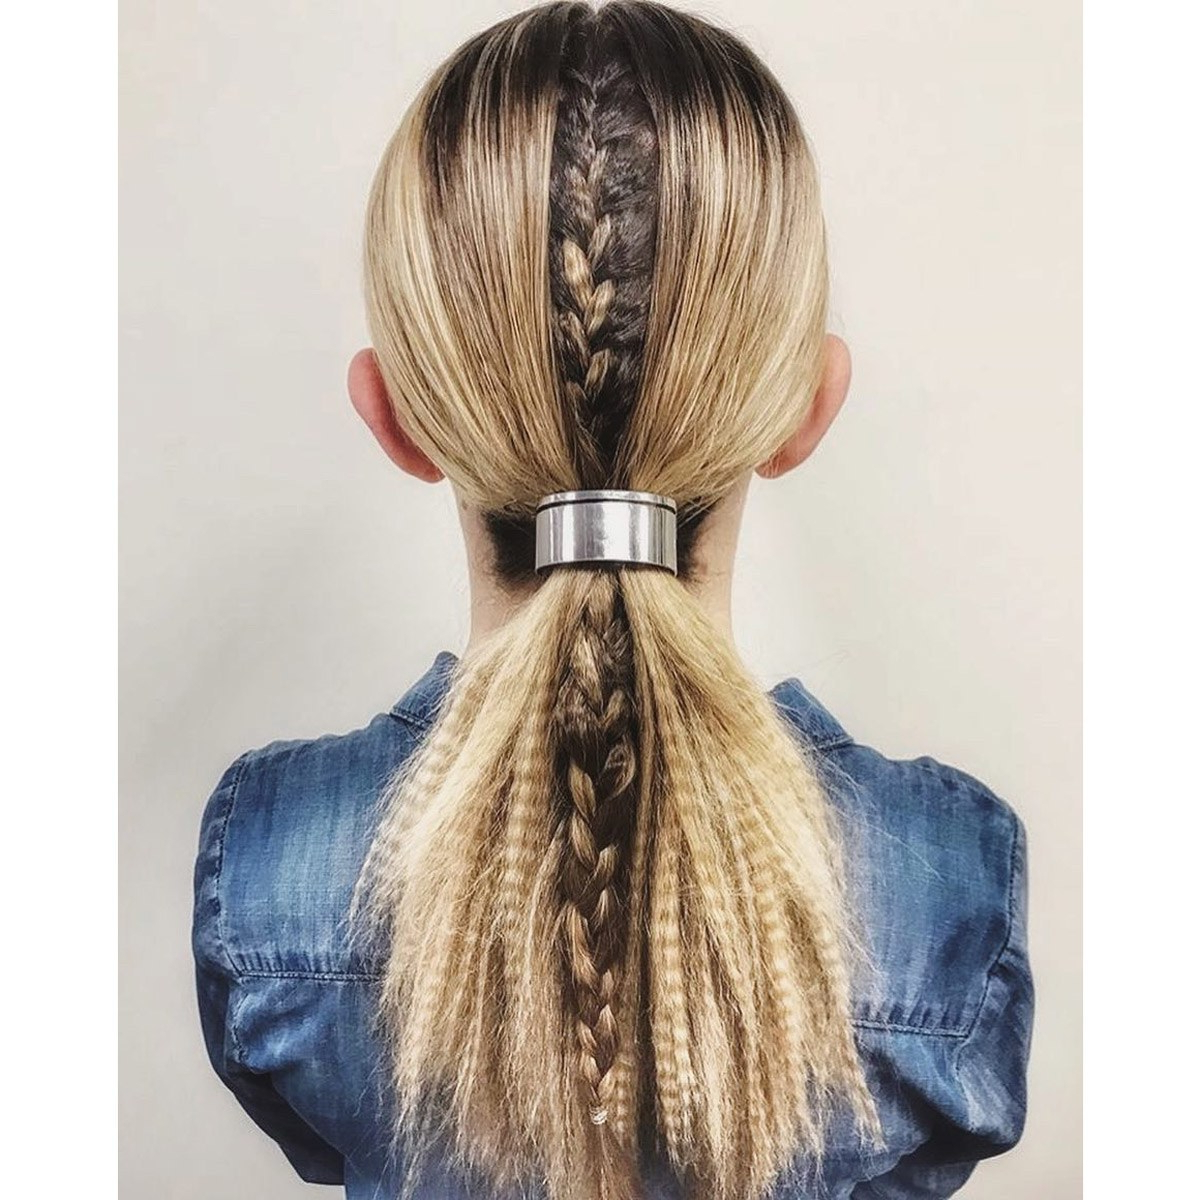 37 Cool Ponytail Hairstyles To Try In 2019 (Gallery 8 of 20)